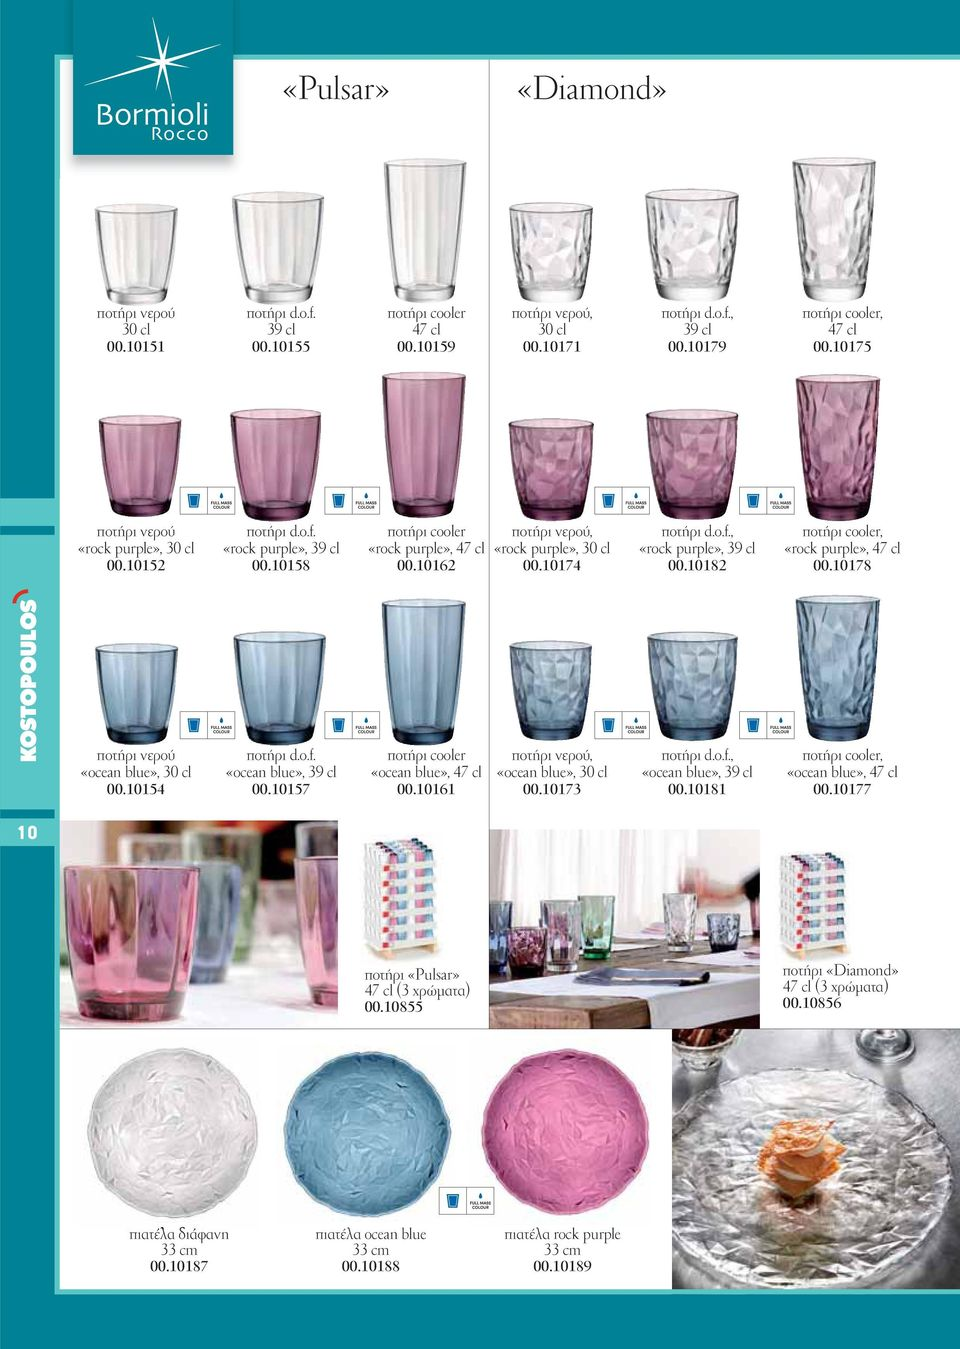 10182 ποτήρι cooler, «rock purple», 47 cl 00.10178 ποτήρι νερού «ocean blue», 30 cl 00.10154 ποτήρι d.o.f. «ocean blue», 39 cl 00.10157 ποτήρι cooler «ocean blue», 47 cl 00.